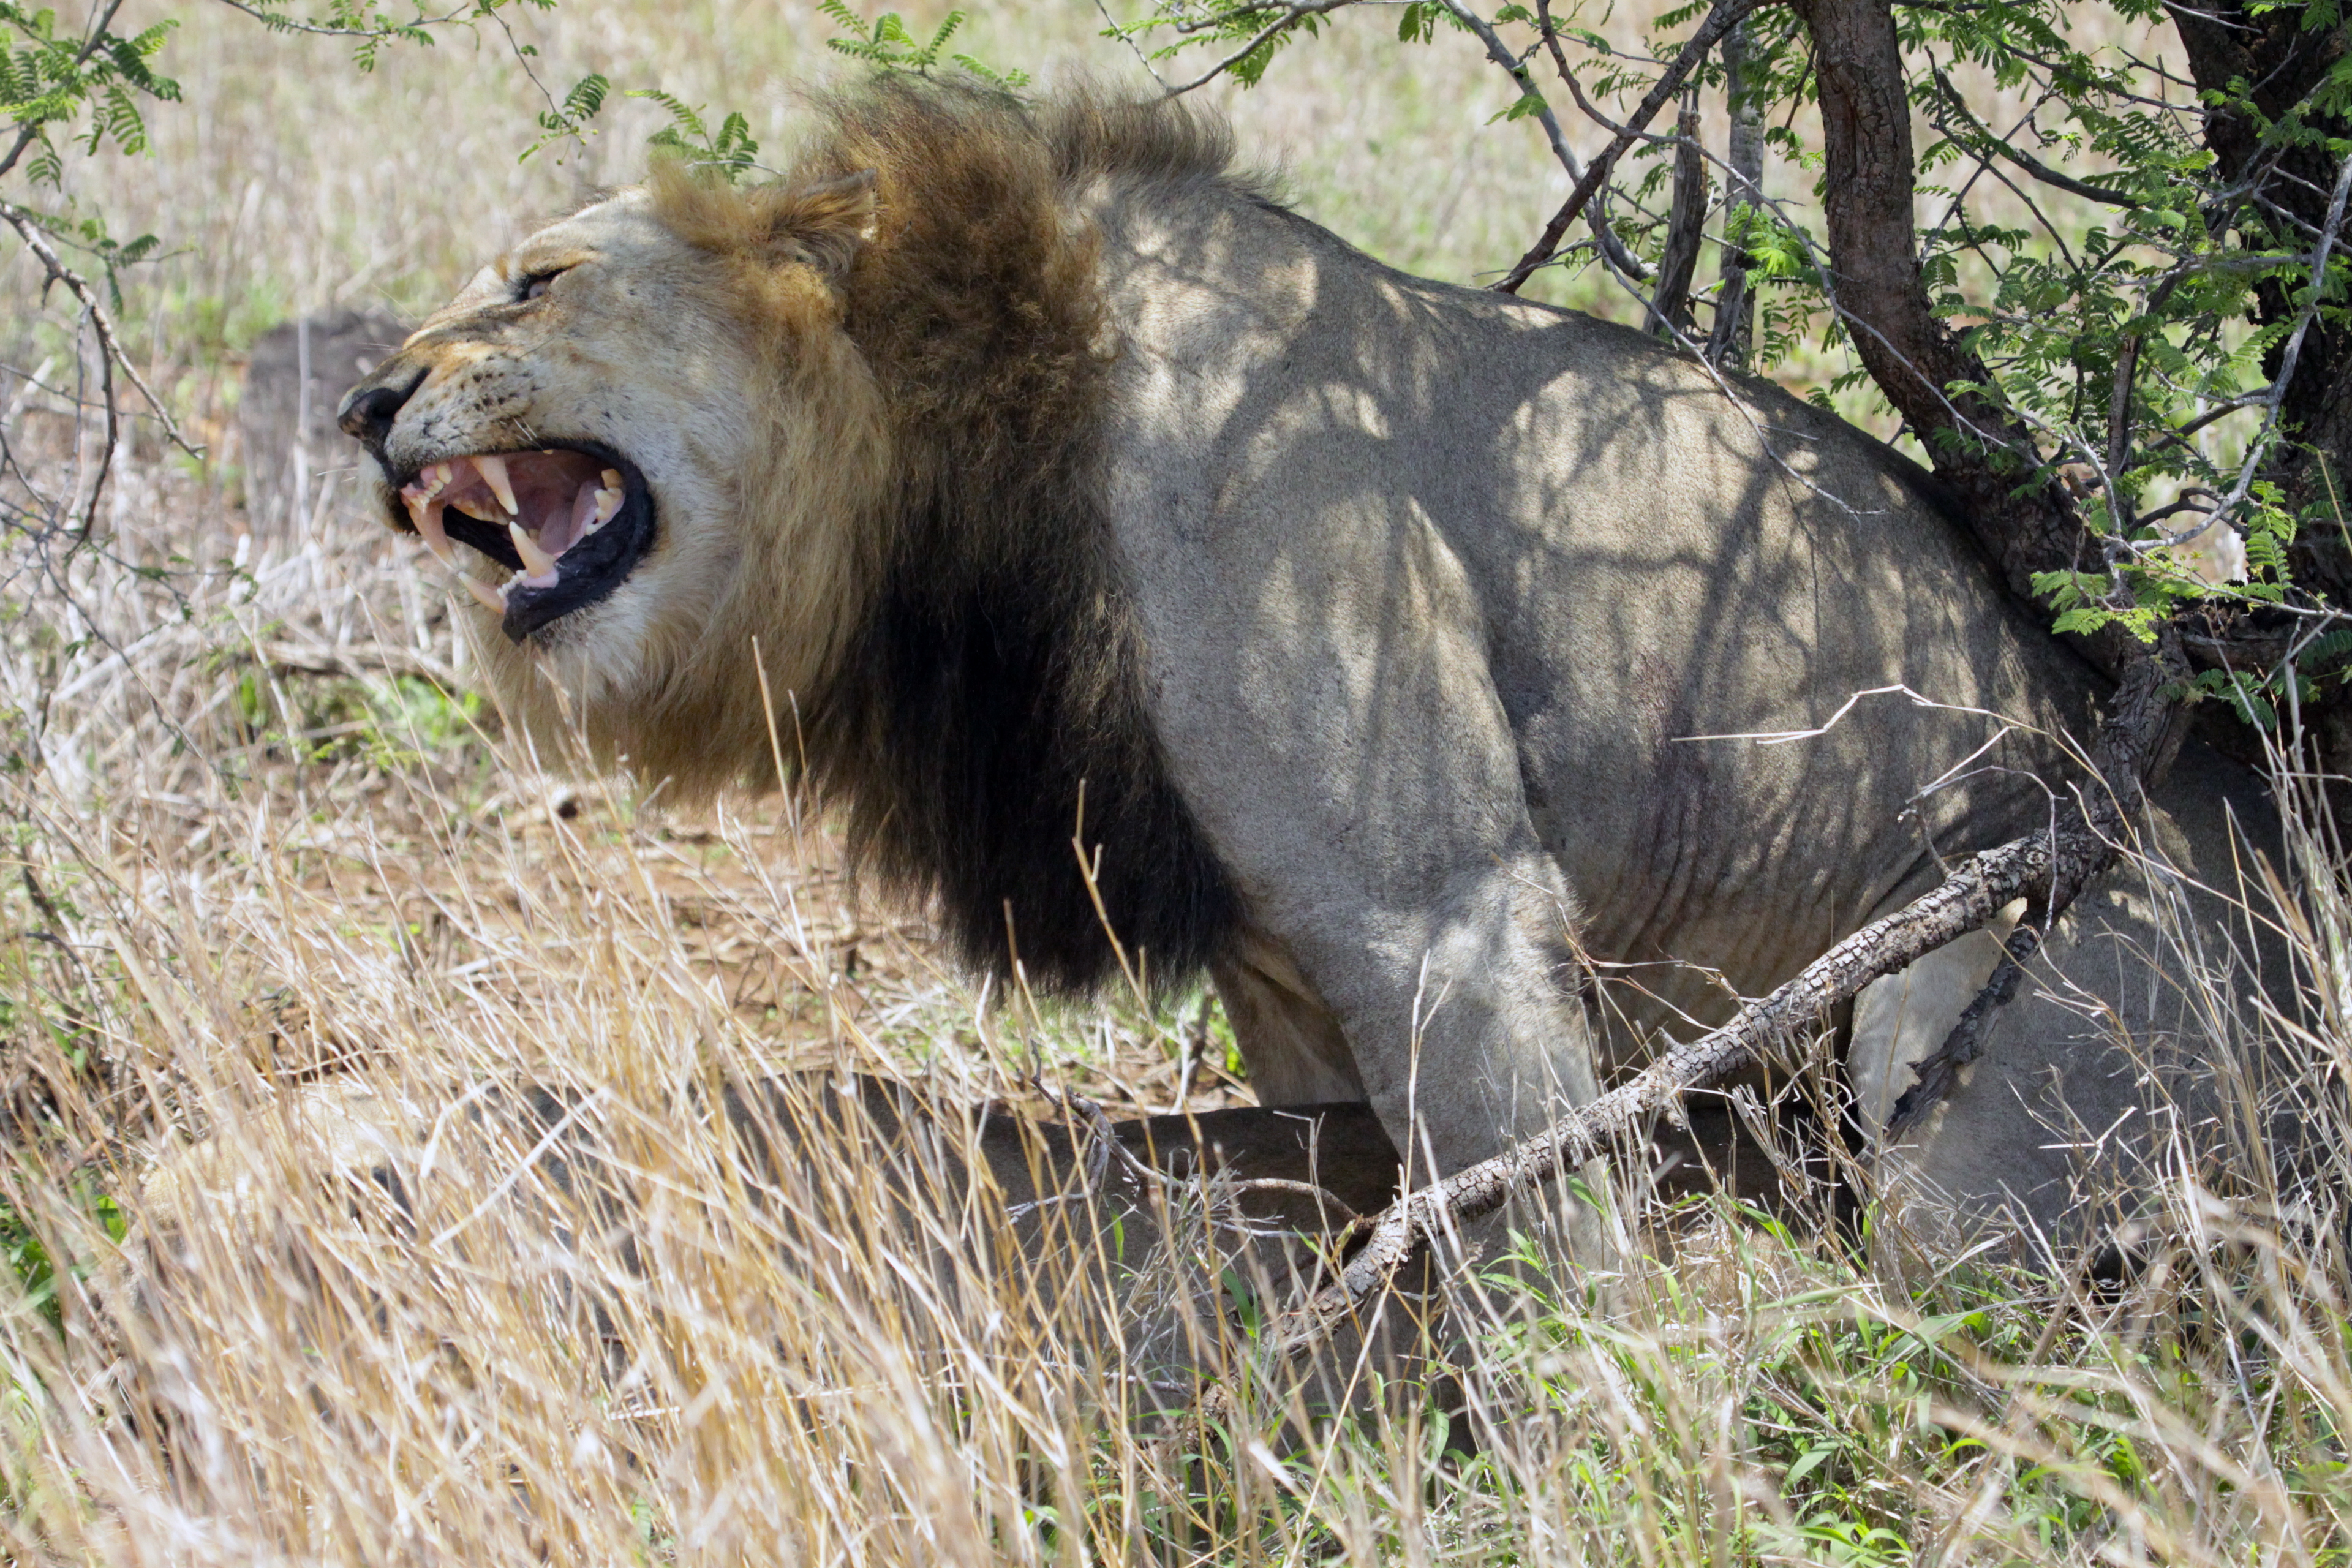 Southeast African Lion - positioned behind a female lion in heat - the mating begins with growling, pawing and even biting - when the female is finally in the mood, she lies down, and the male mounts her as seen here - actual copulation takes 6-10 seconds